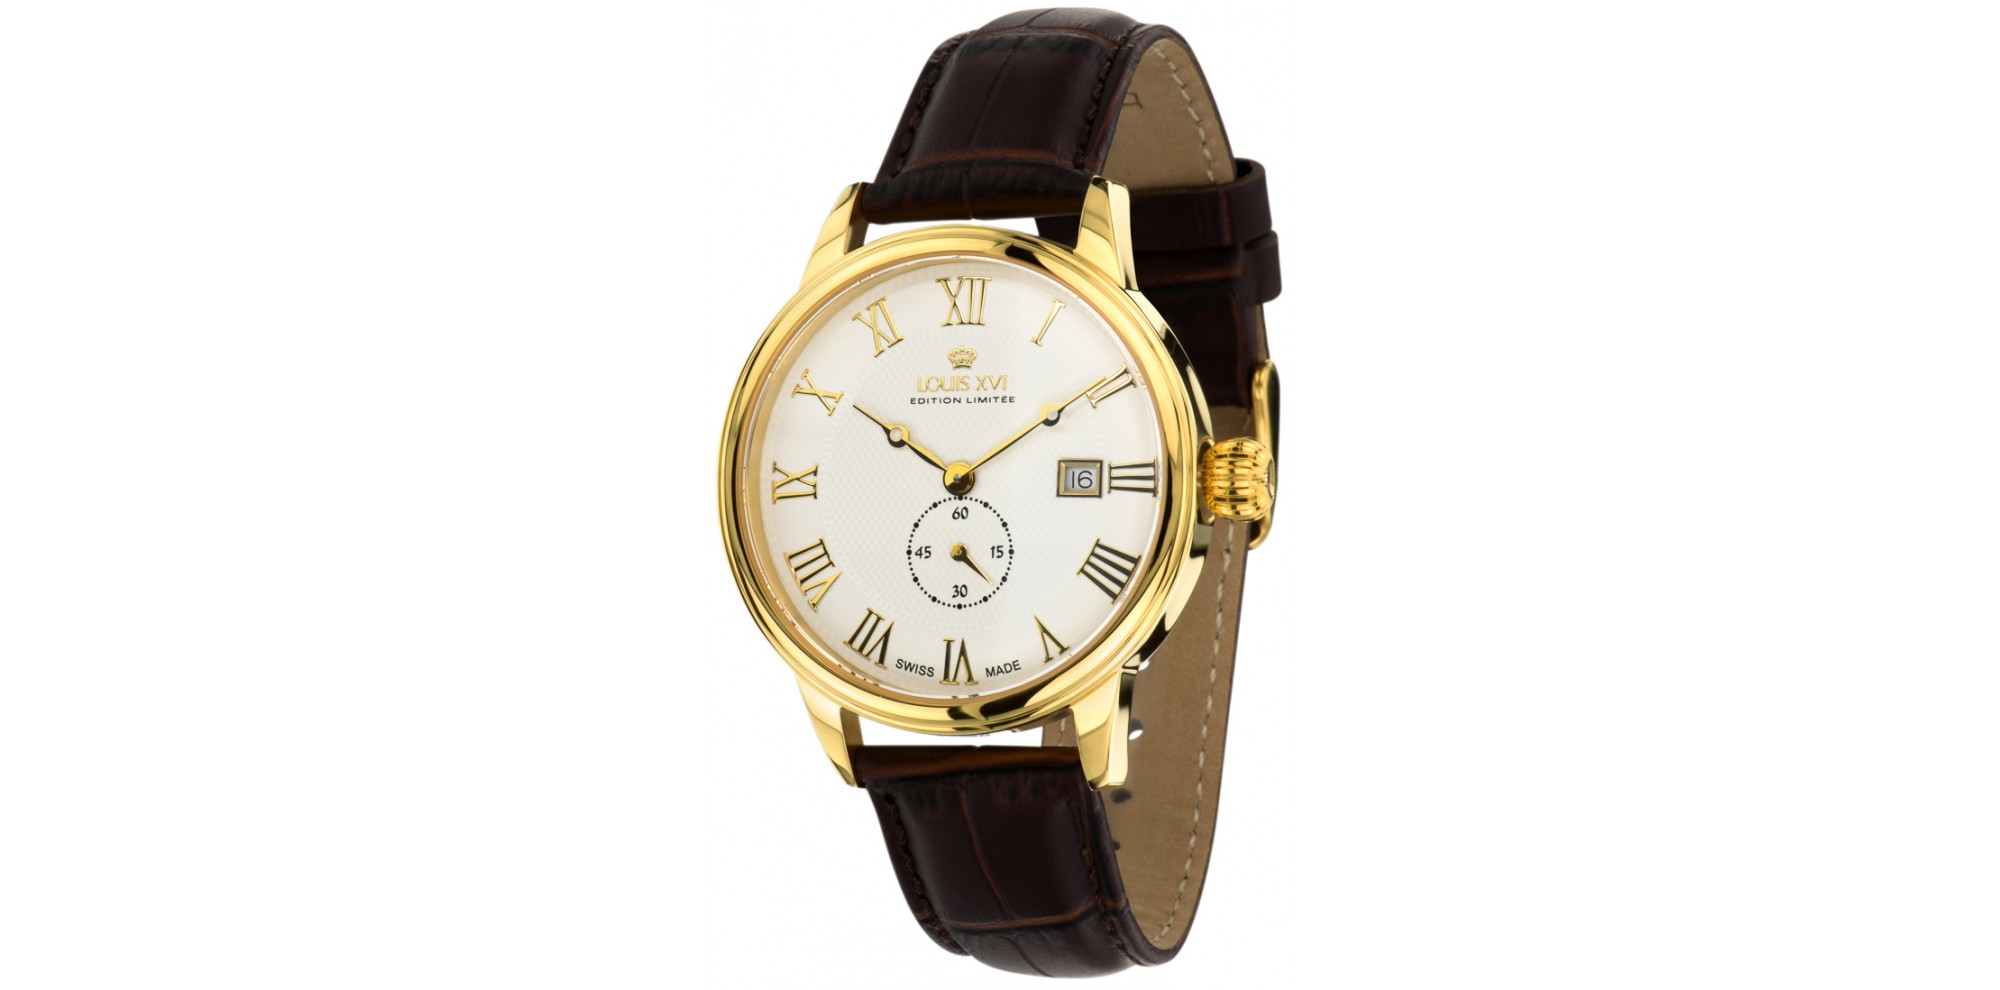 LOUIS CHARLES l'or blanc saphir Swiss Made